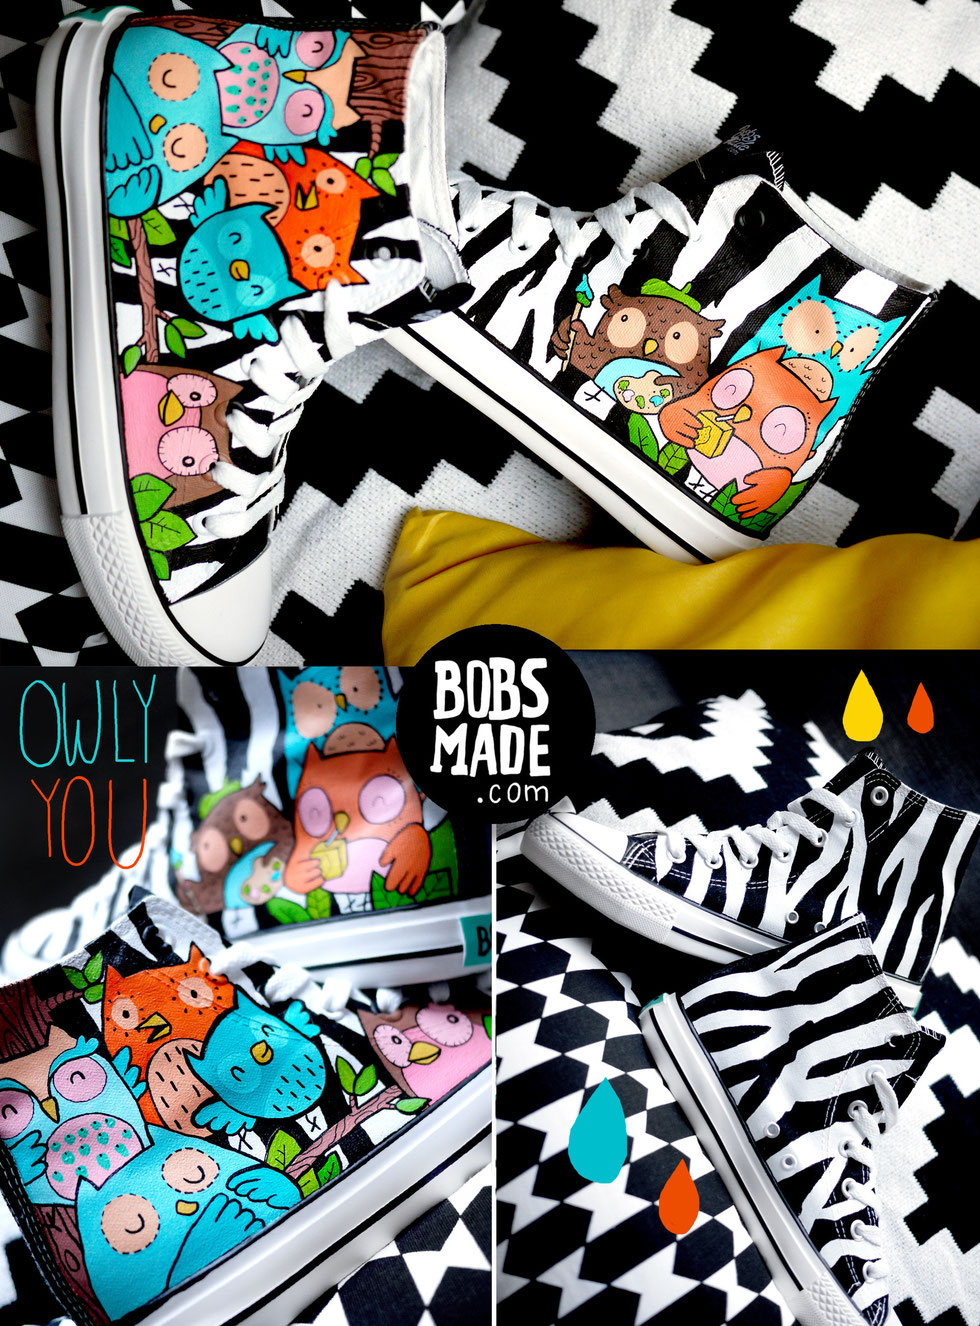 Bobsmade Owl Chucks Custom Shoes